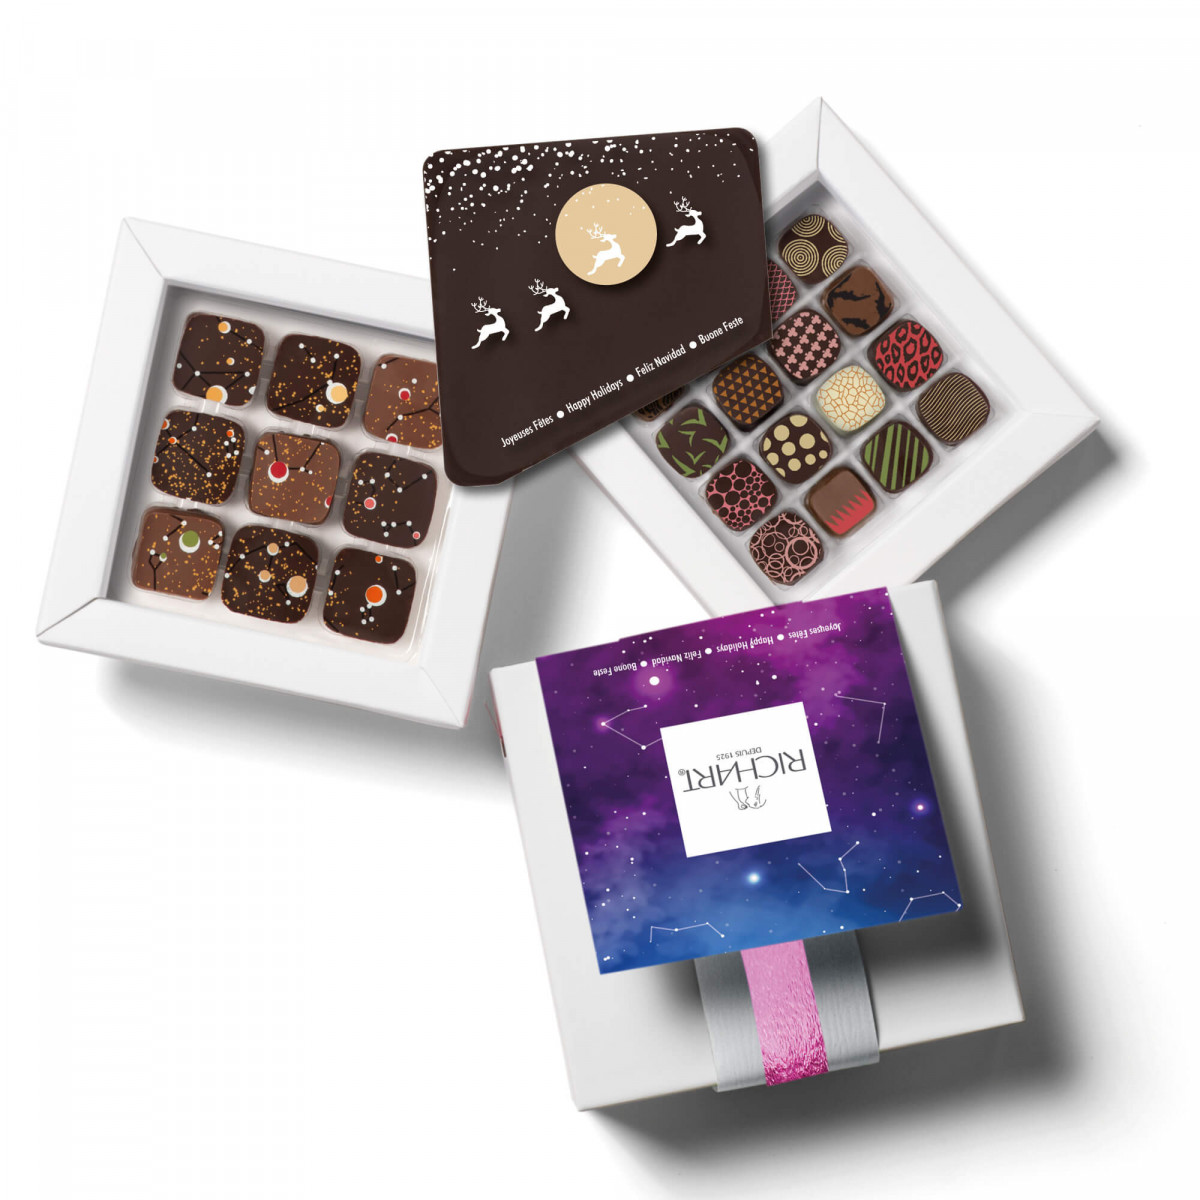 Intense Holidays - Personalized gift box of filled chocolates